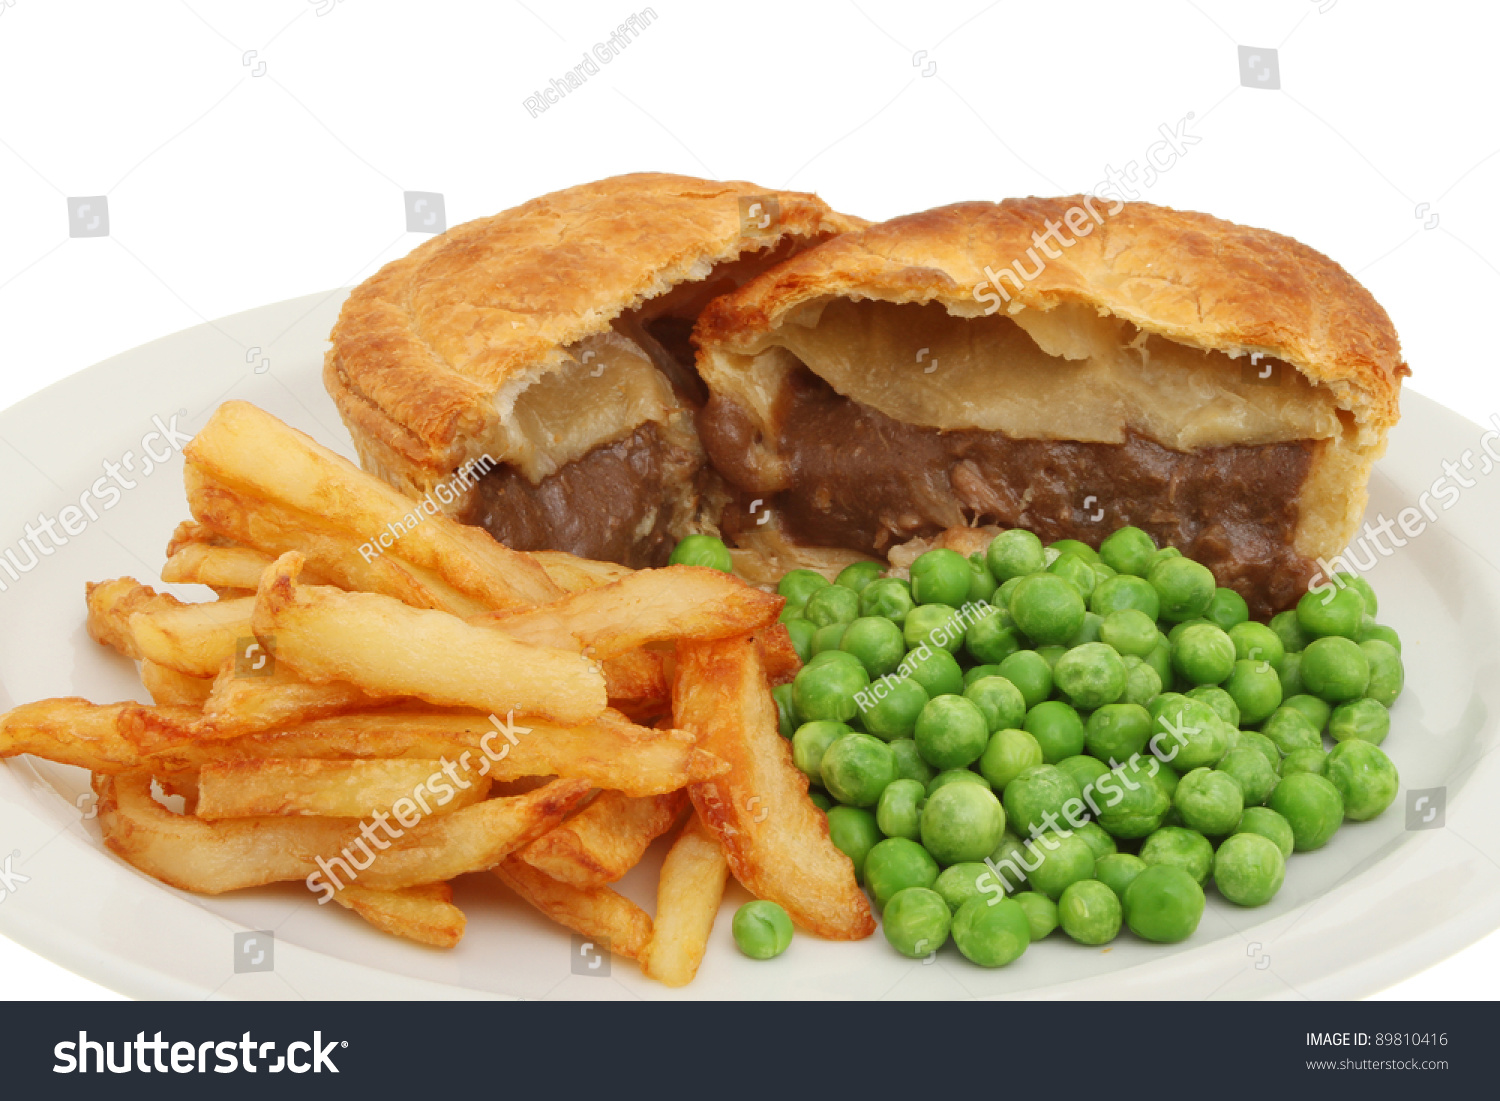 Closeup of meat pie chips and peas on a plate  sc 1 st  Shutterstock & Closeup Meat Pie Chips Peas On Stock Photo (Safe to Use) 89810416 ...